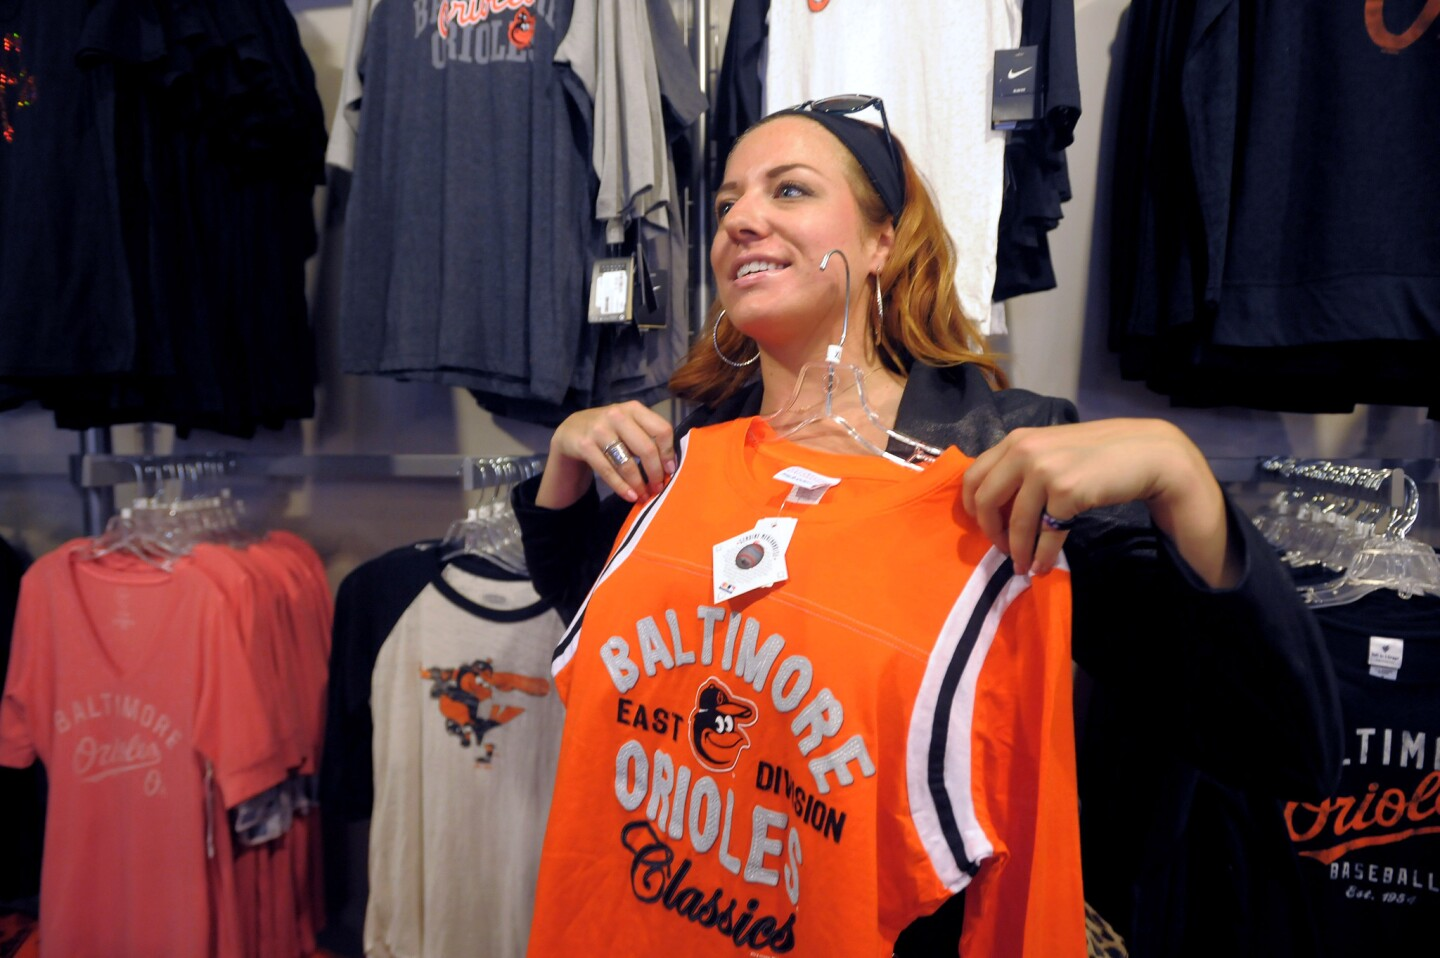 Kristen Hildebrand holds up a jersey for her mother's approval in the Majestic Team Store, in the warehouse at Camden Yards. With the Orioles possible headed for the play-offs the sales of team merchandise has been skyrocketing.